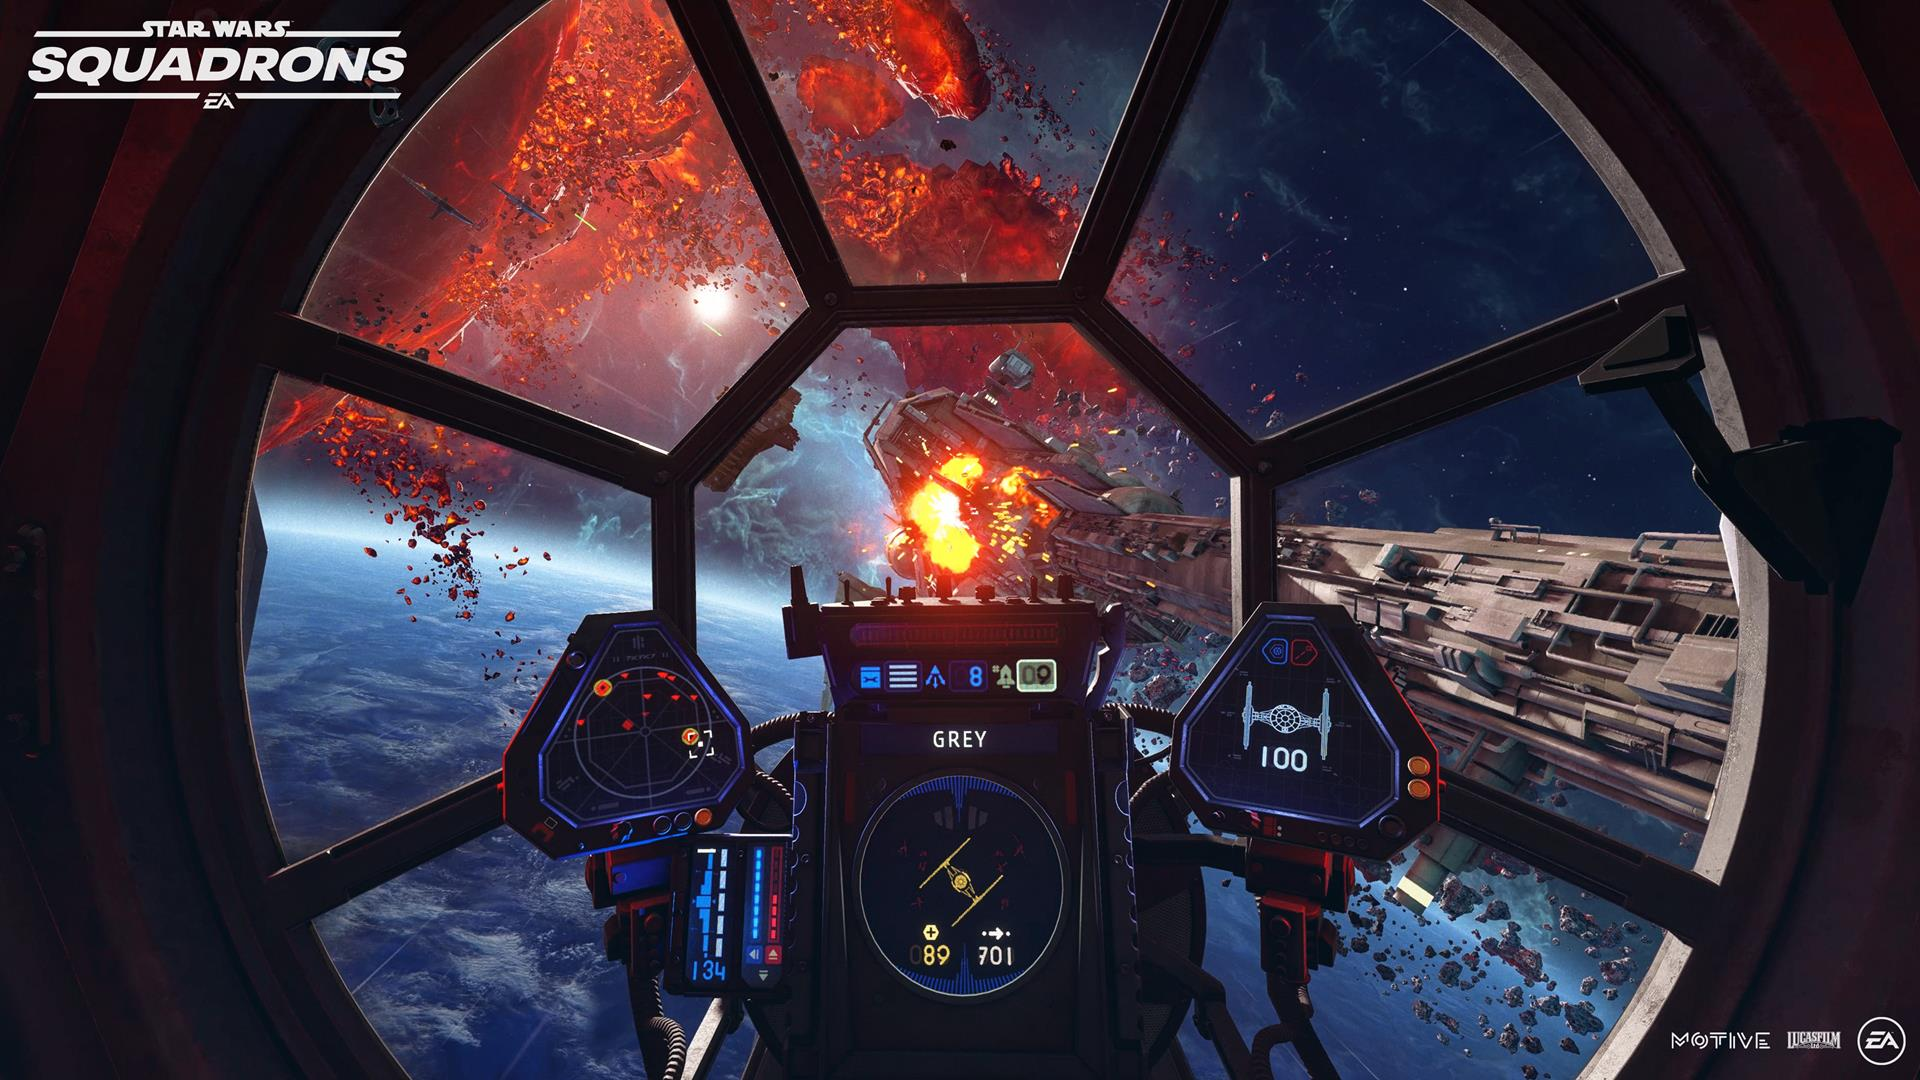 Star Wars: Squadrons will feature HOTAS support on consoles thumbnail